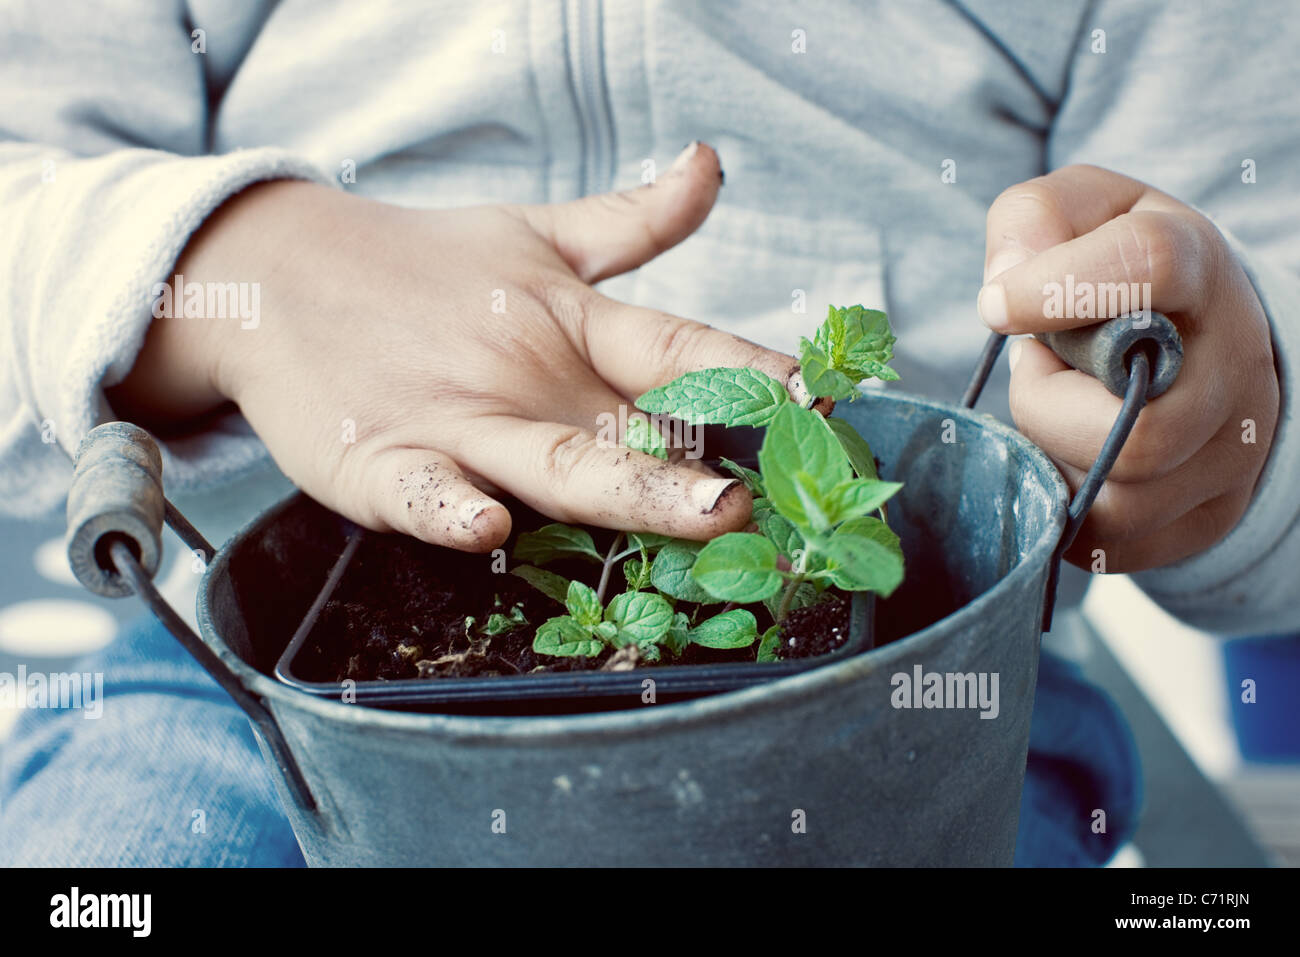 Child touching soil of mint plant, mid section - Stock Image